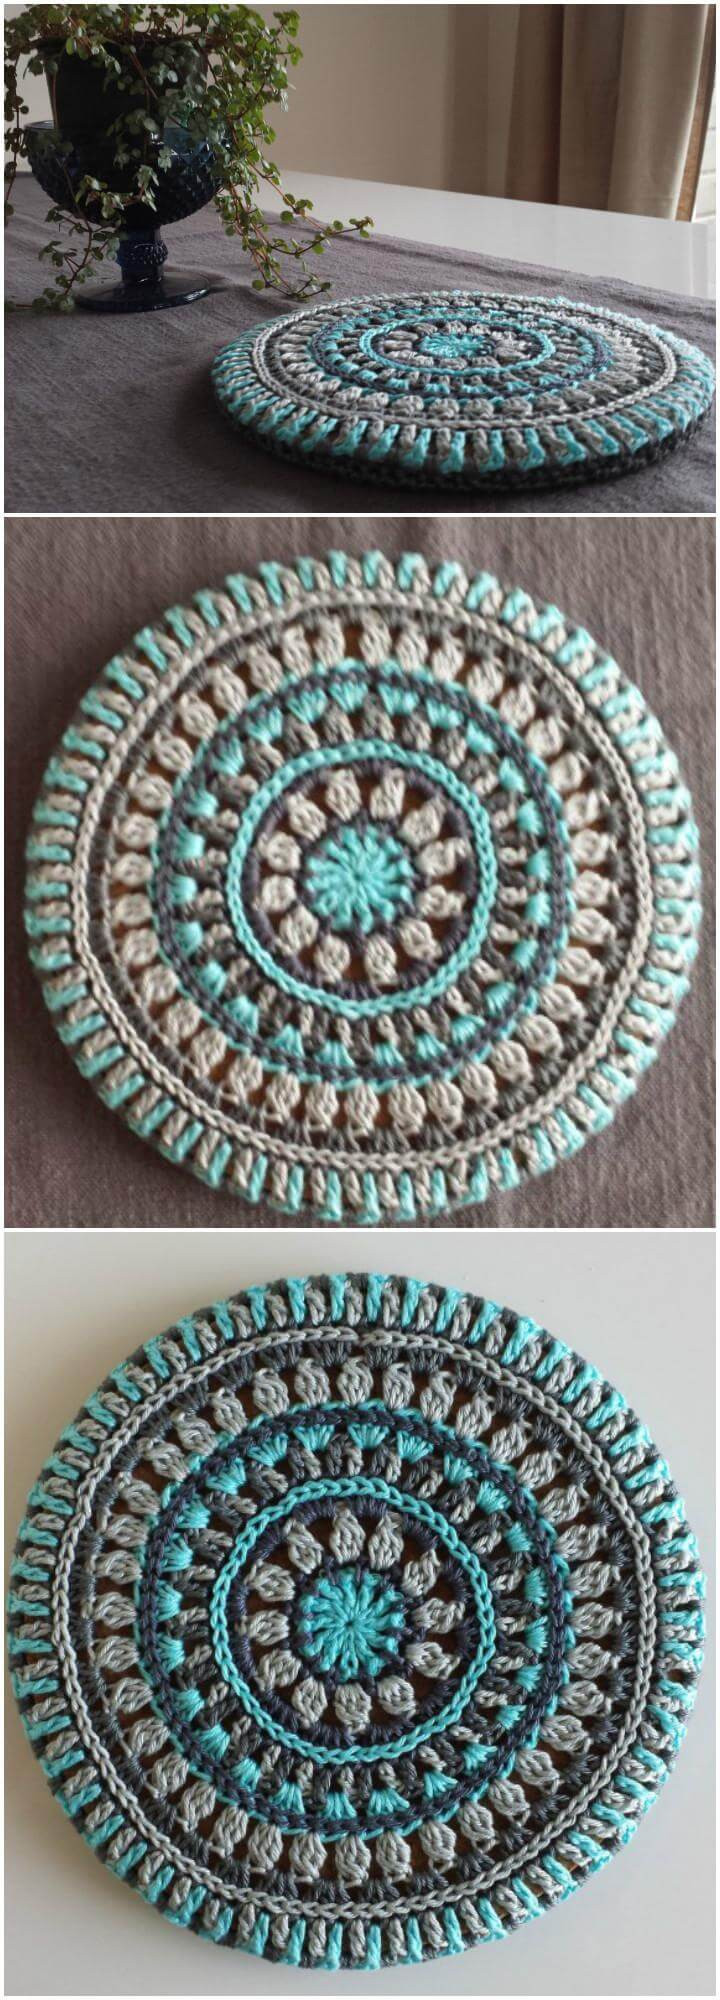 Crochet Mandalas Best Of 60 Free Crochet Mandala Patterns Page 3 Of 12 Diy Of Incredible 41 Pics Crochet Mandalas